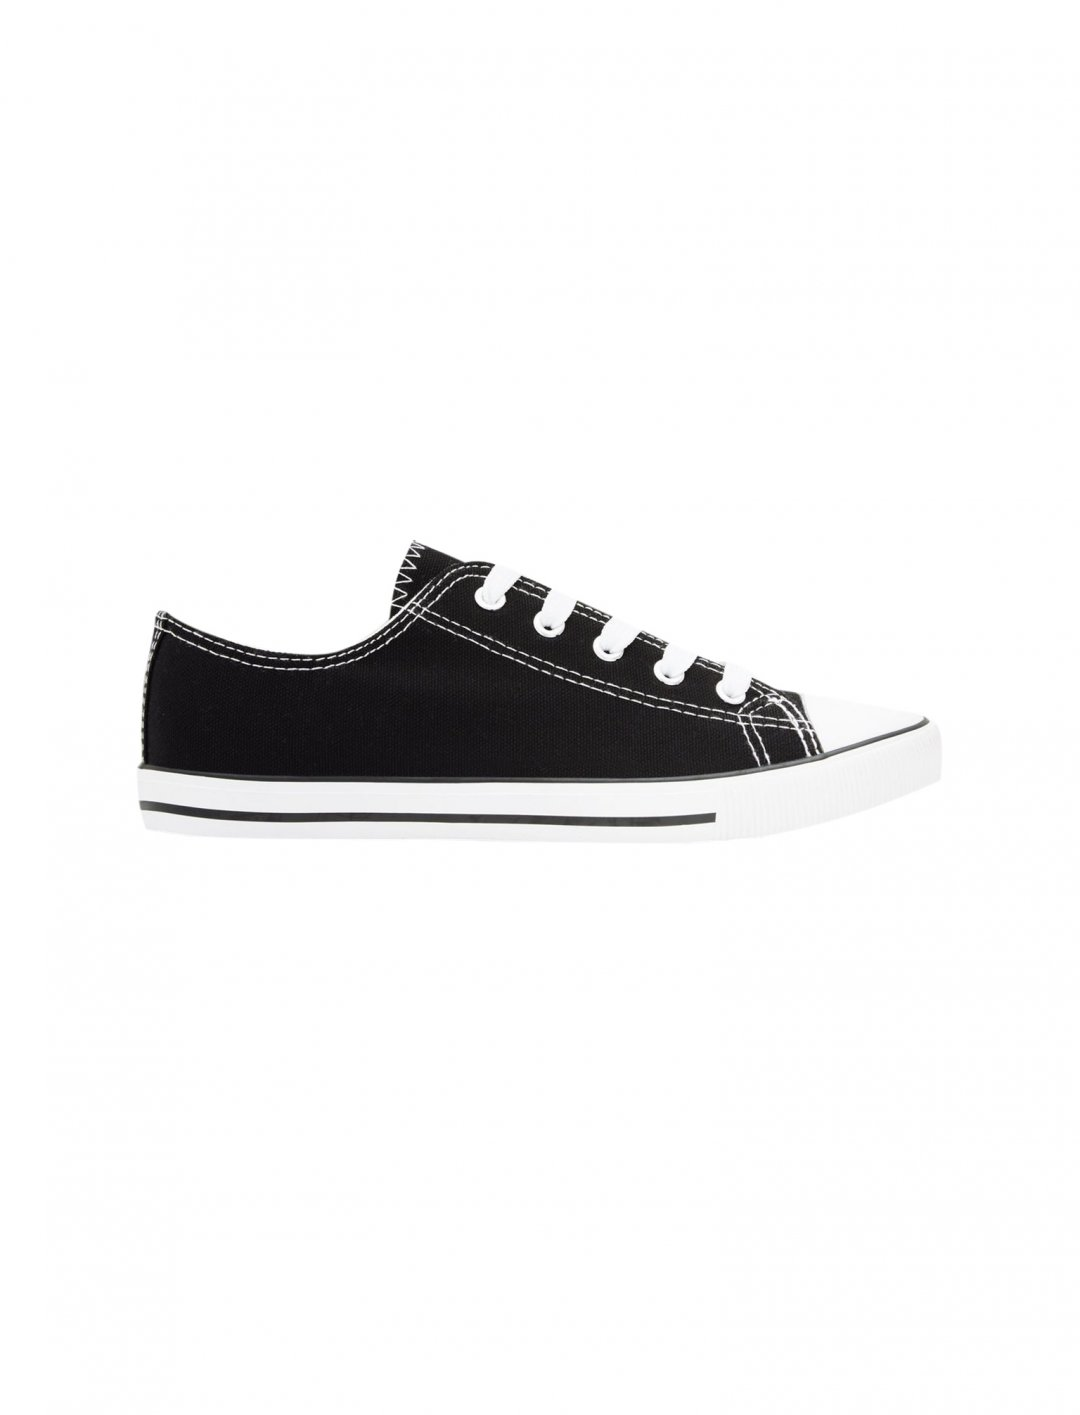 "New Look Black Trainers {""id"":12,""product_section_id"":1,""name"":""Shoes"",""order"":12} New Look"